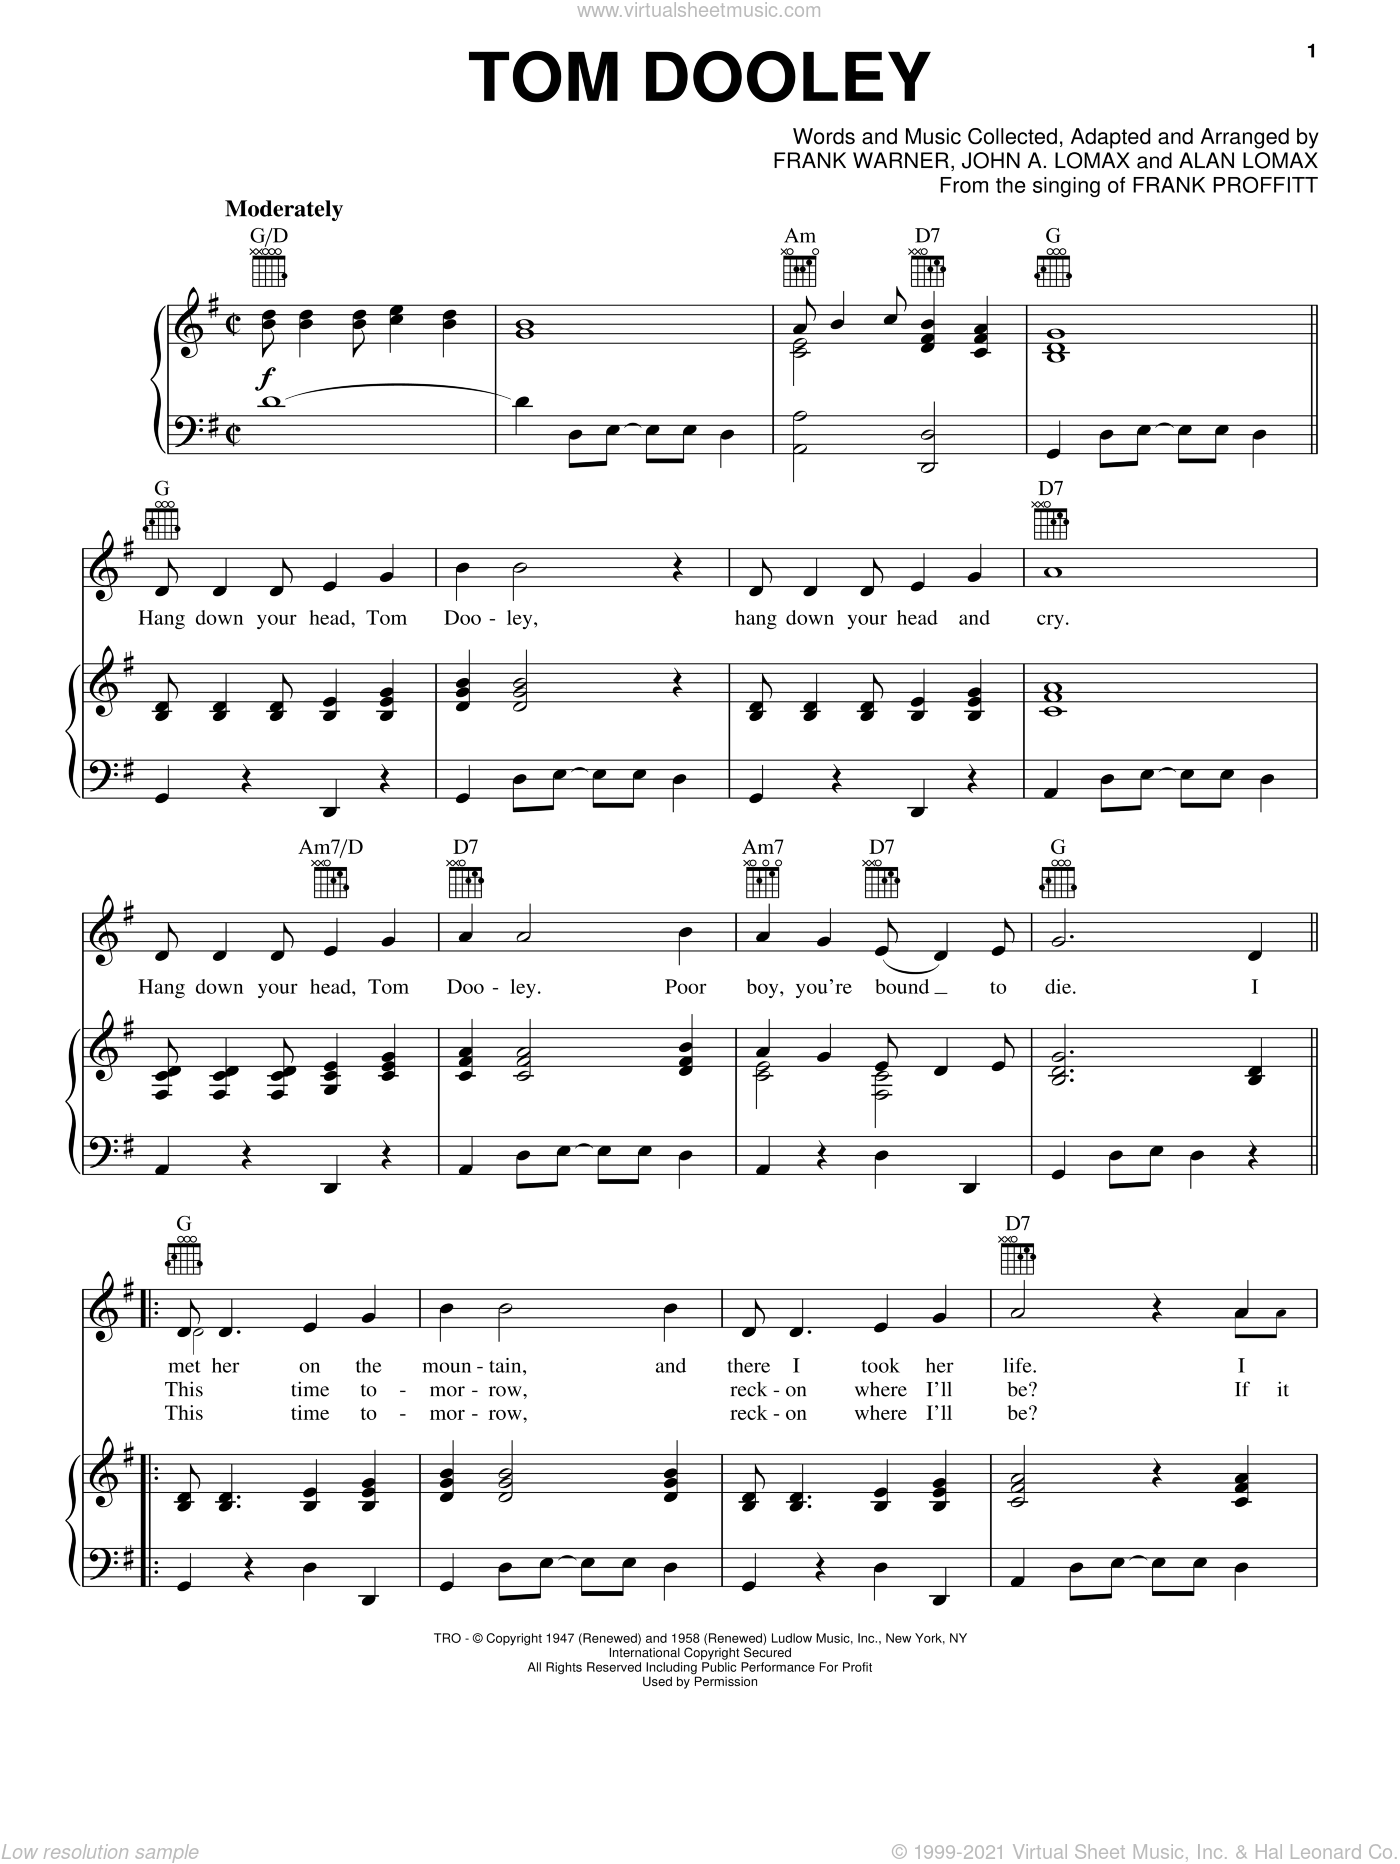 Tom Dooley sheet music for voice, piano or guitar by Kingston Trio, Frank Warner and John A. Lomax, intermediate skill level